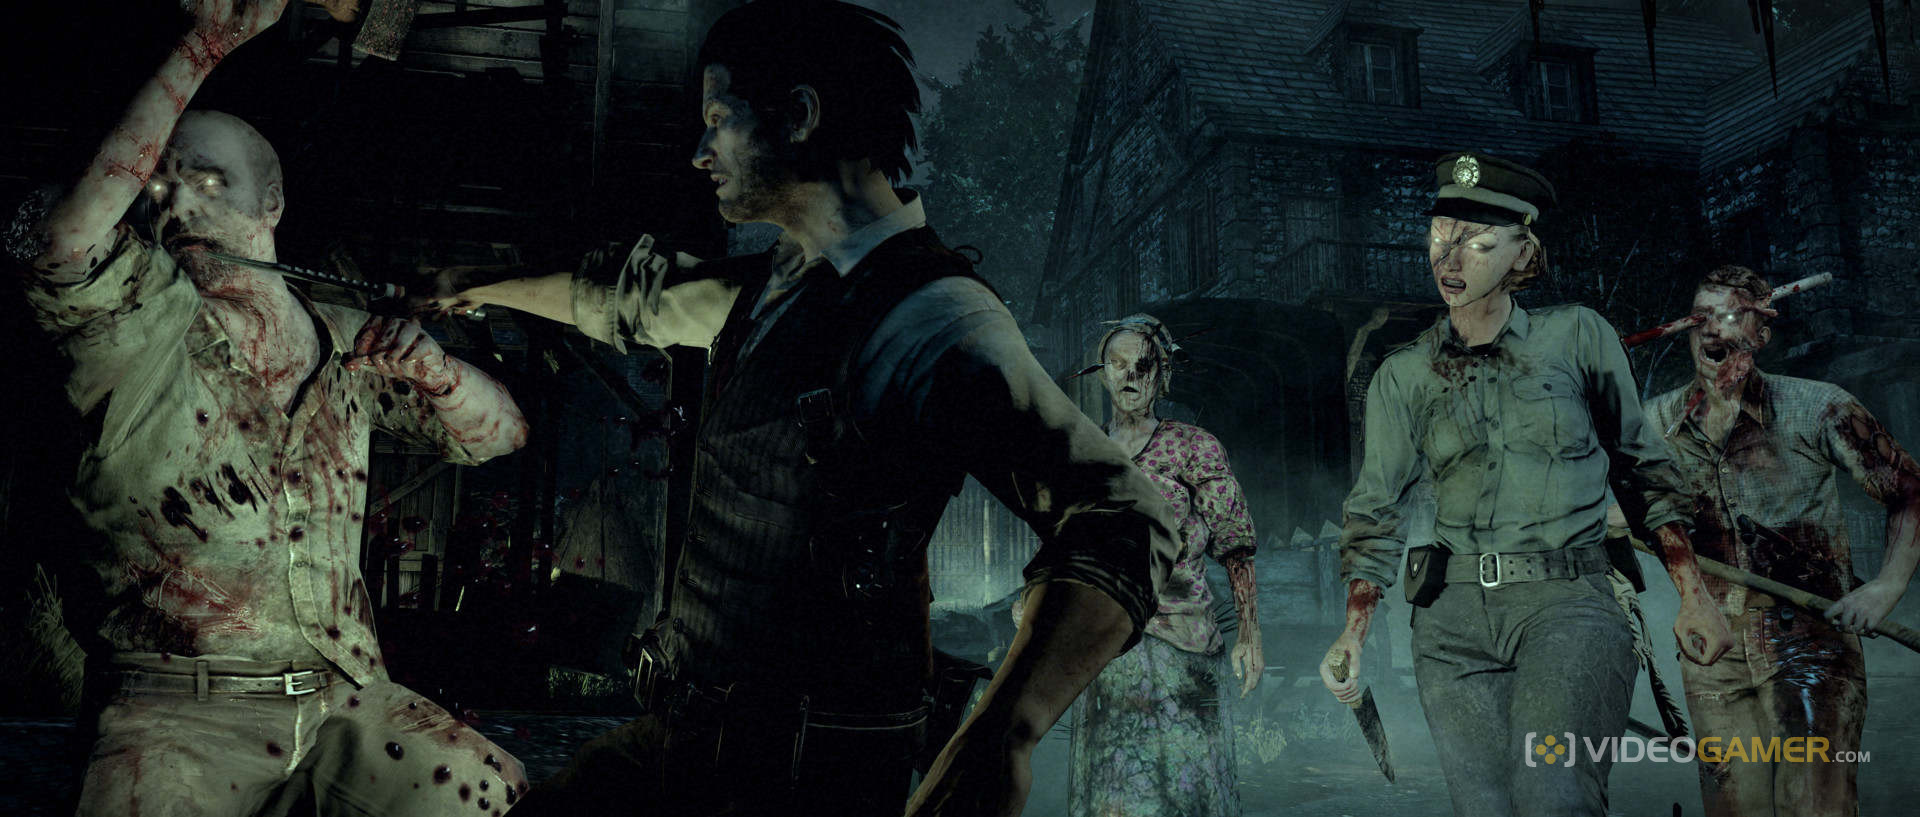 the_evil_within_34.jpg